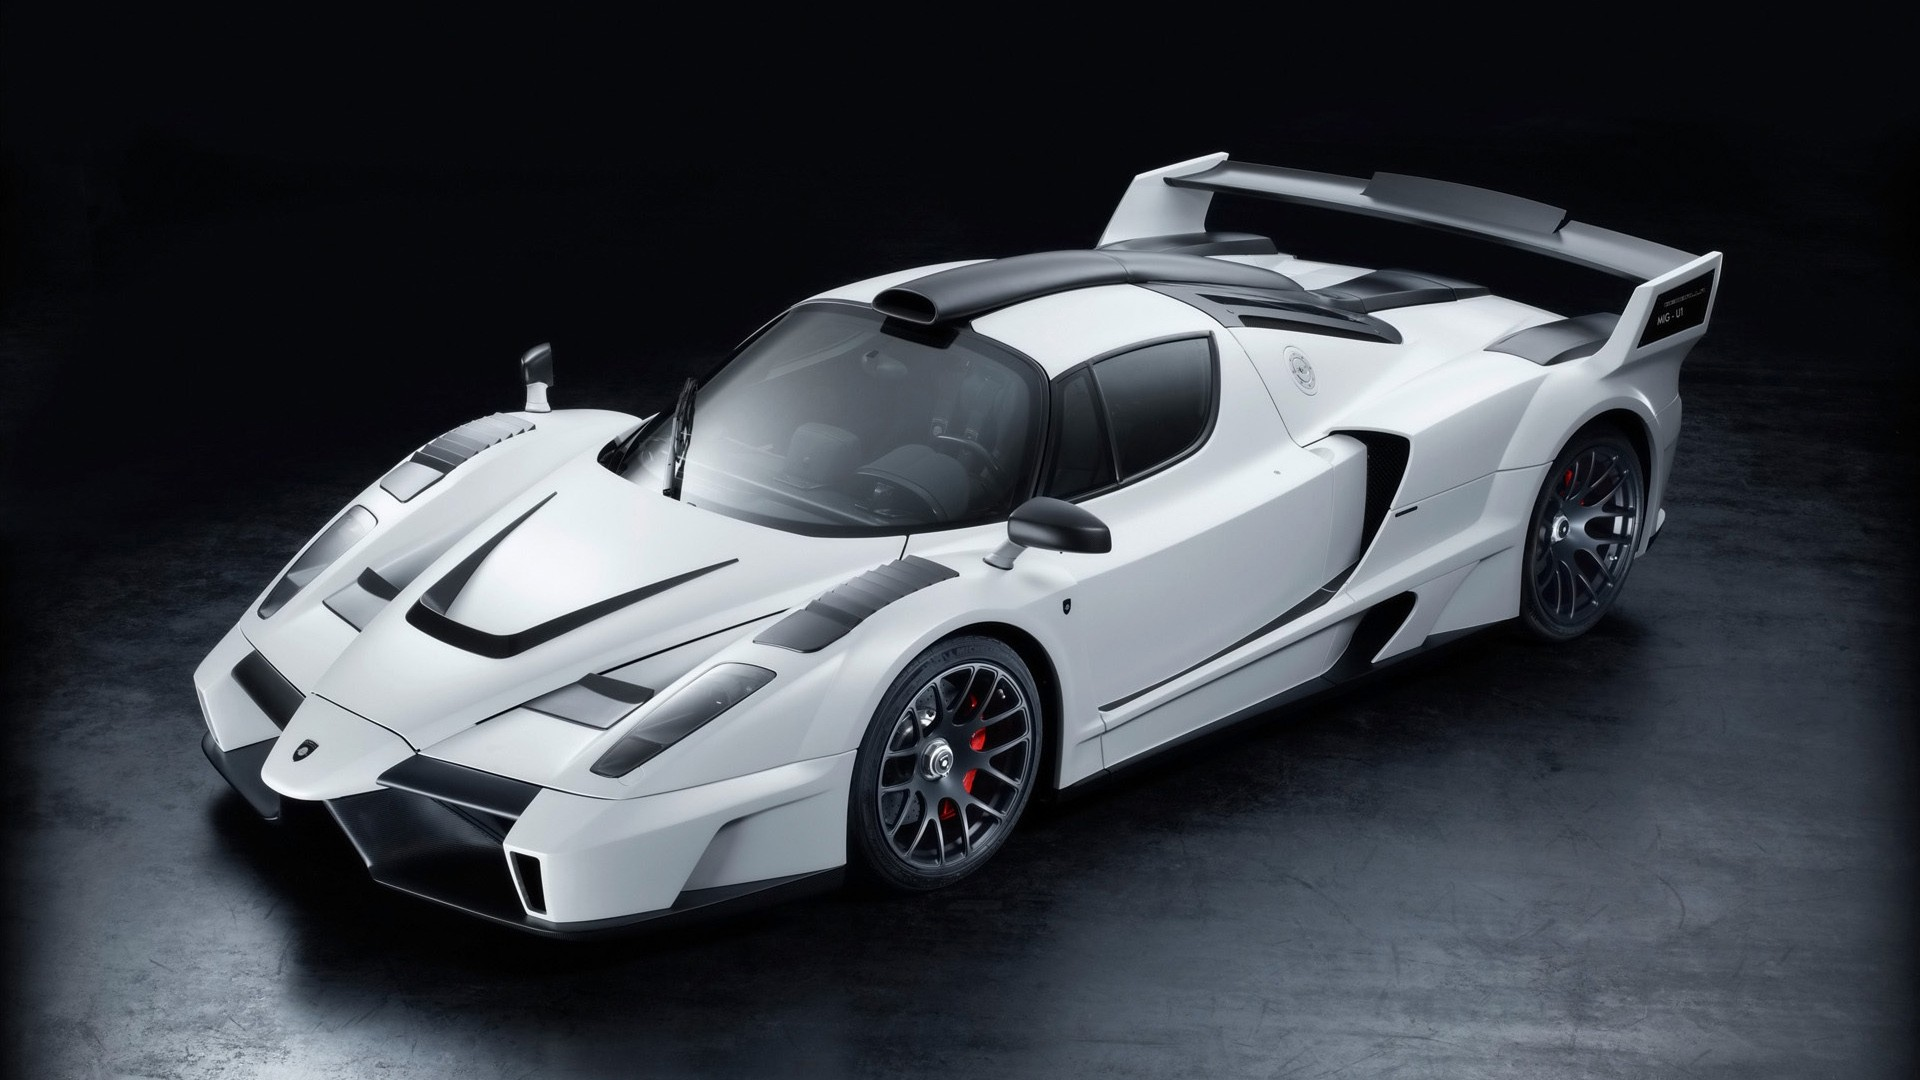 Super Cars Image Widescreen 6 Thumb